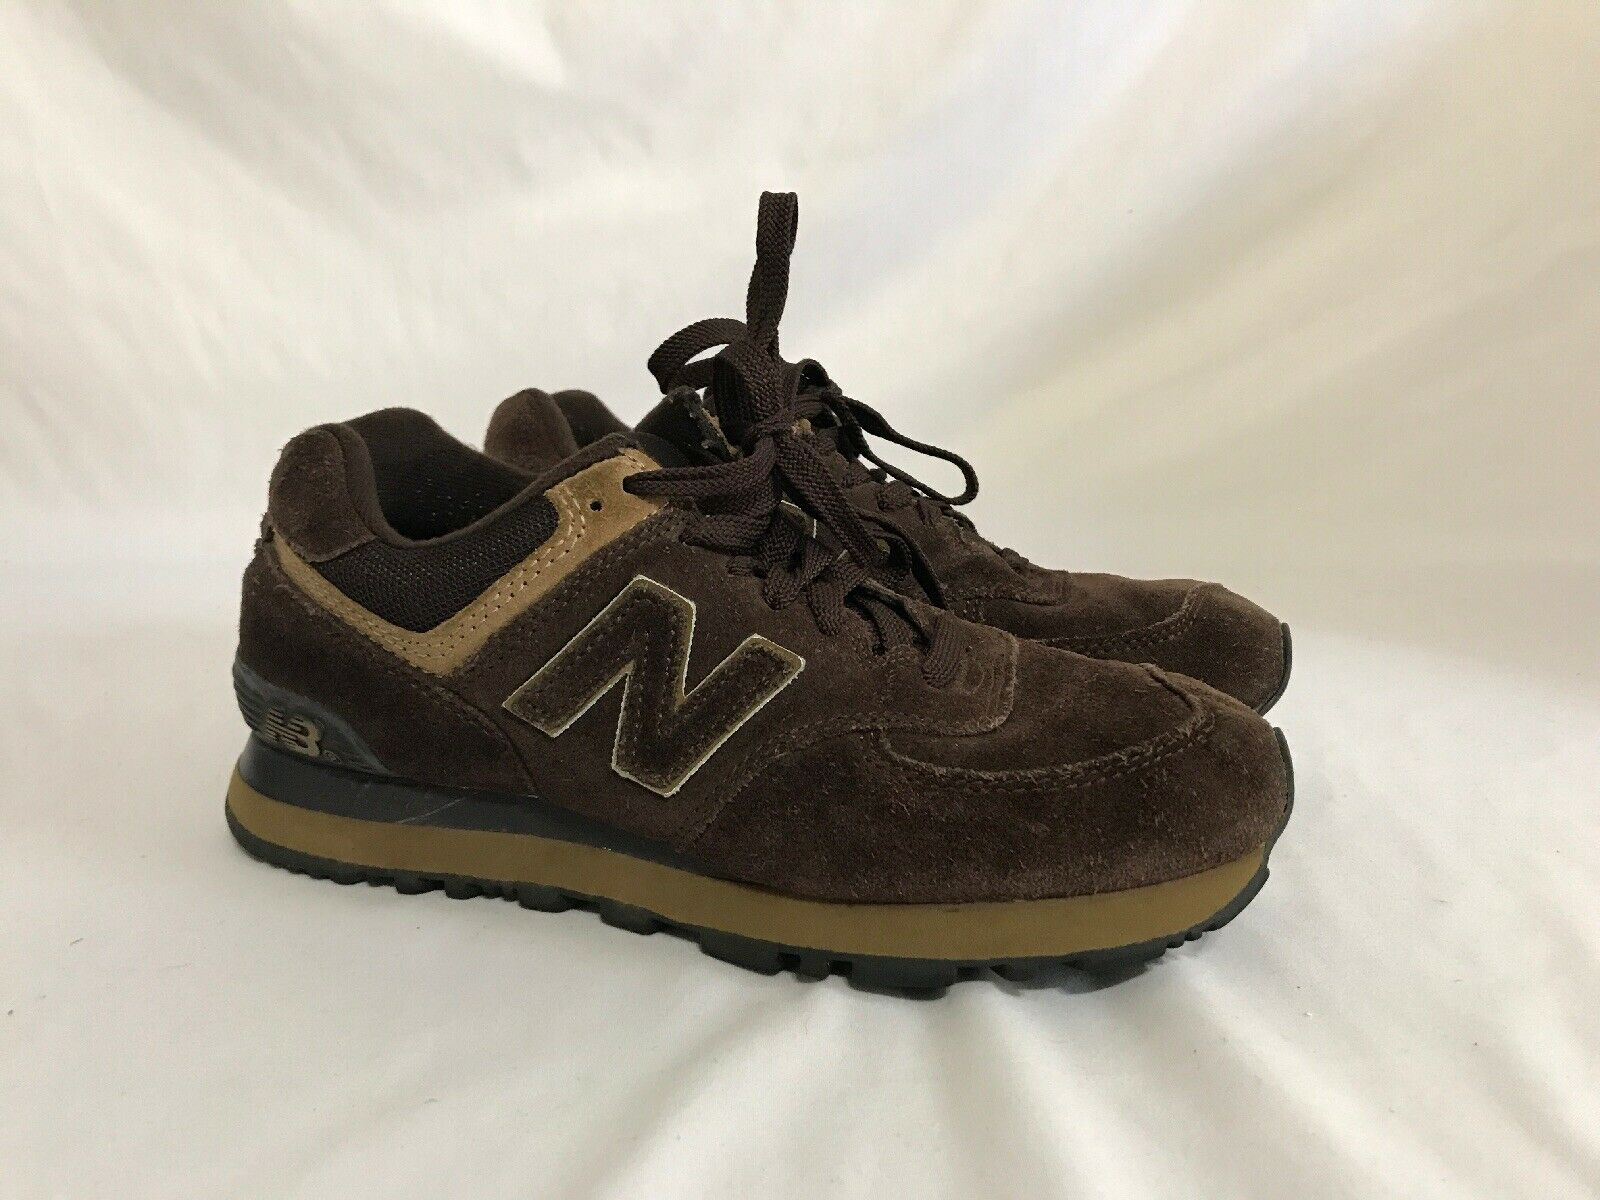 Women's New Balance shoes Brown Size 7